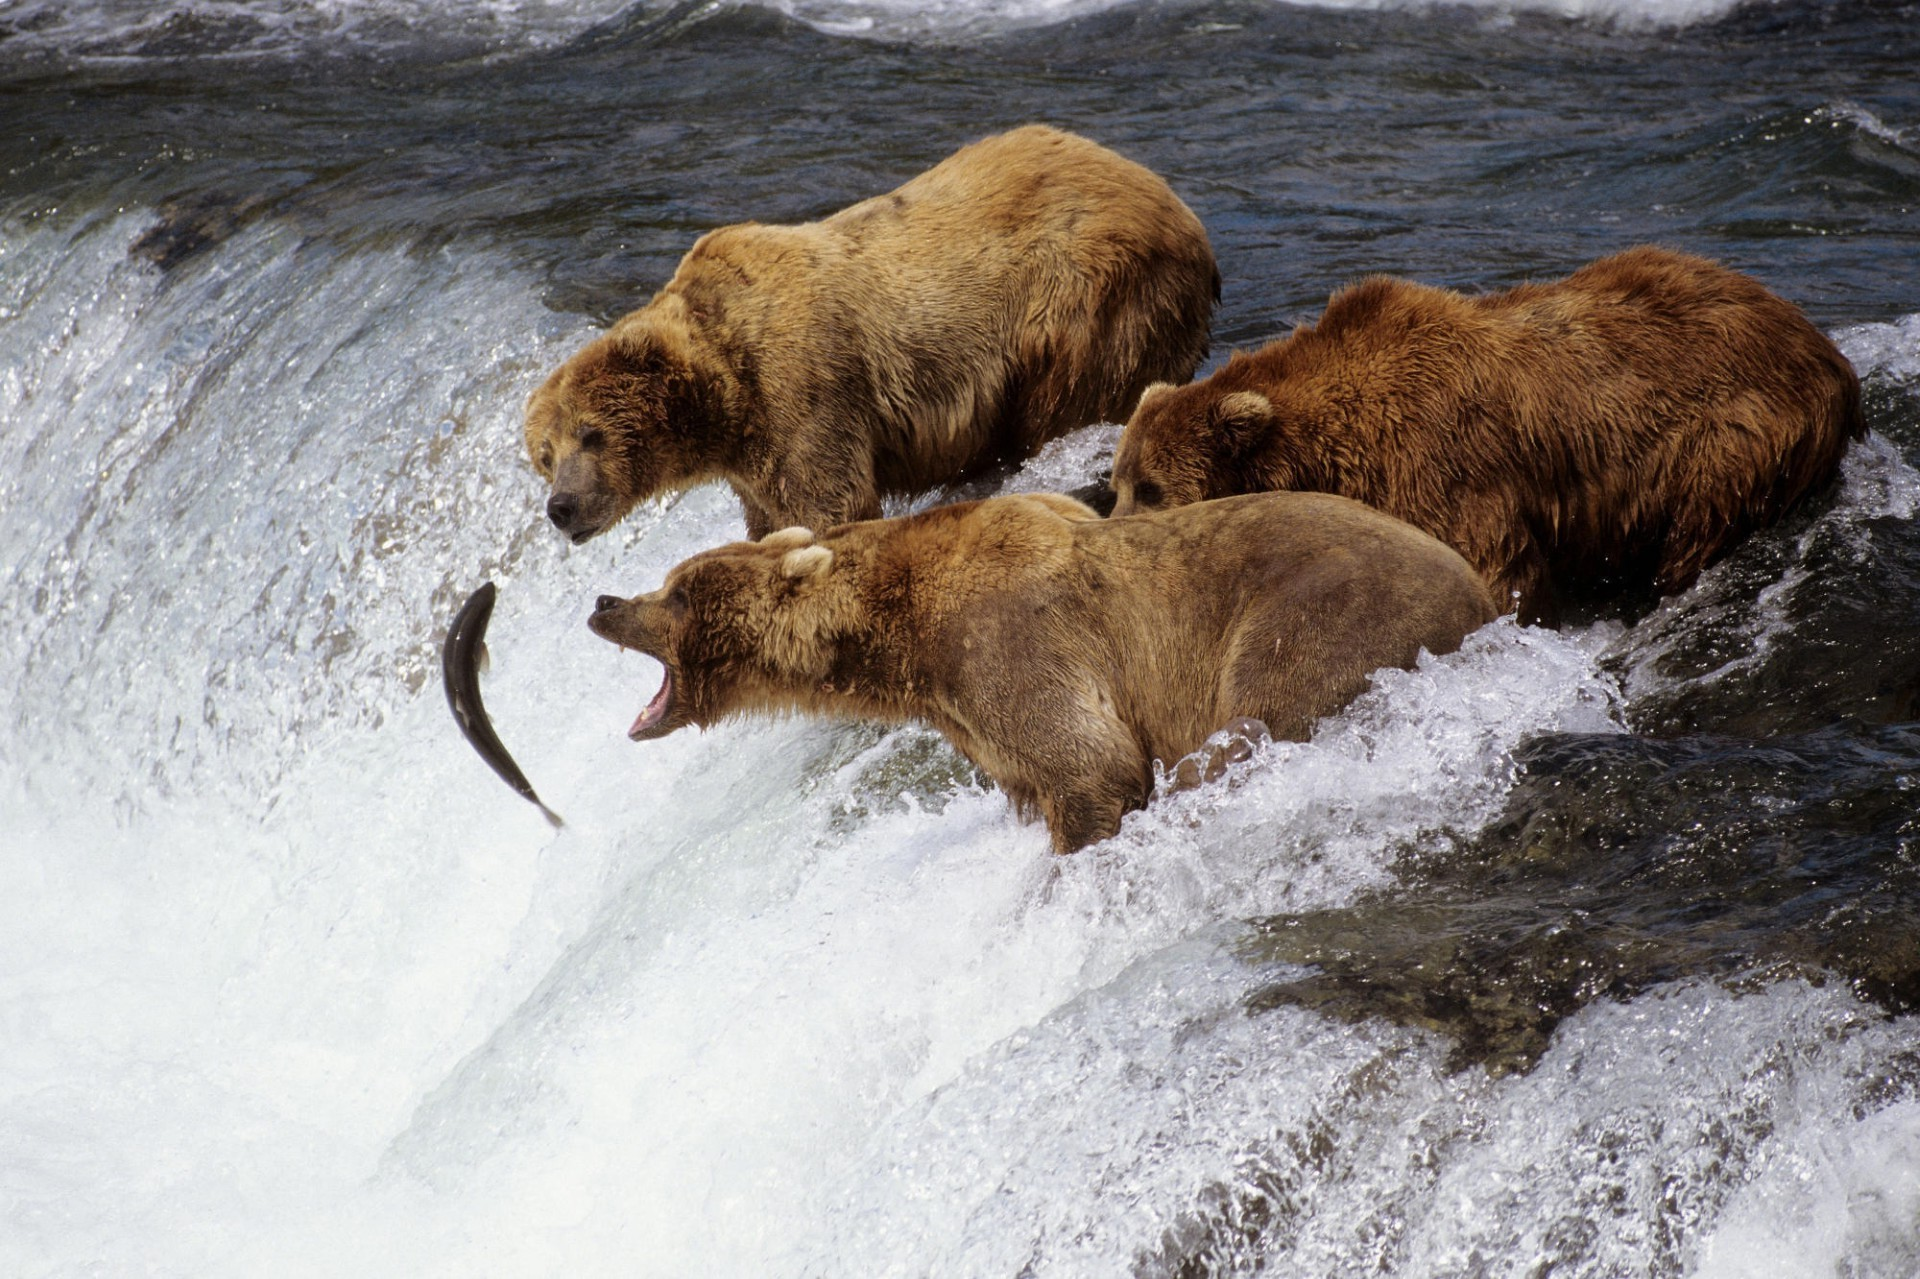 reintroduction of grizzly bears the symbols of the american wilderness Group wants state to study reintroducing grizzly bears 10:55 am a grizzly bear roams near beaver to conduct a feasibility study on grizzly reintroduction.